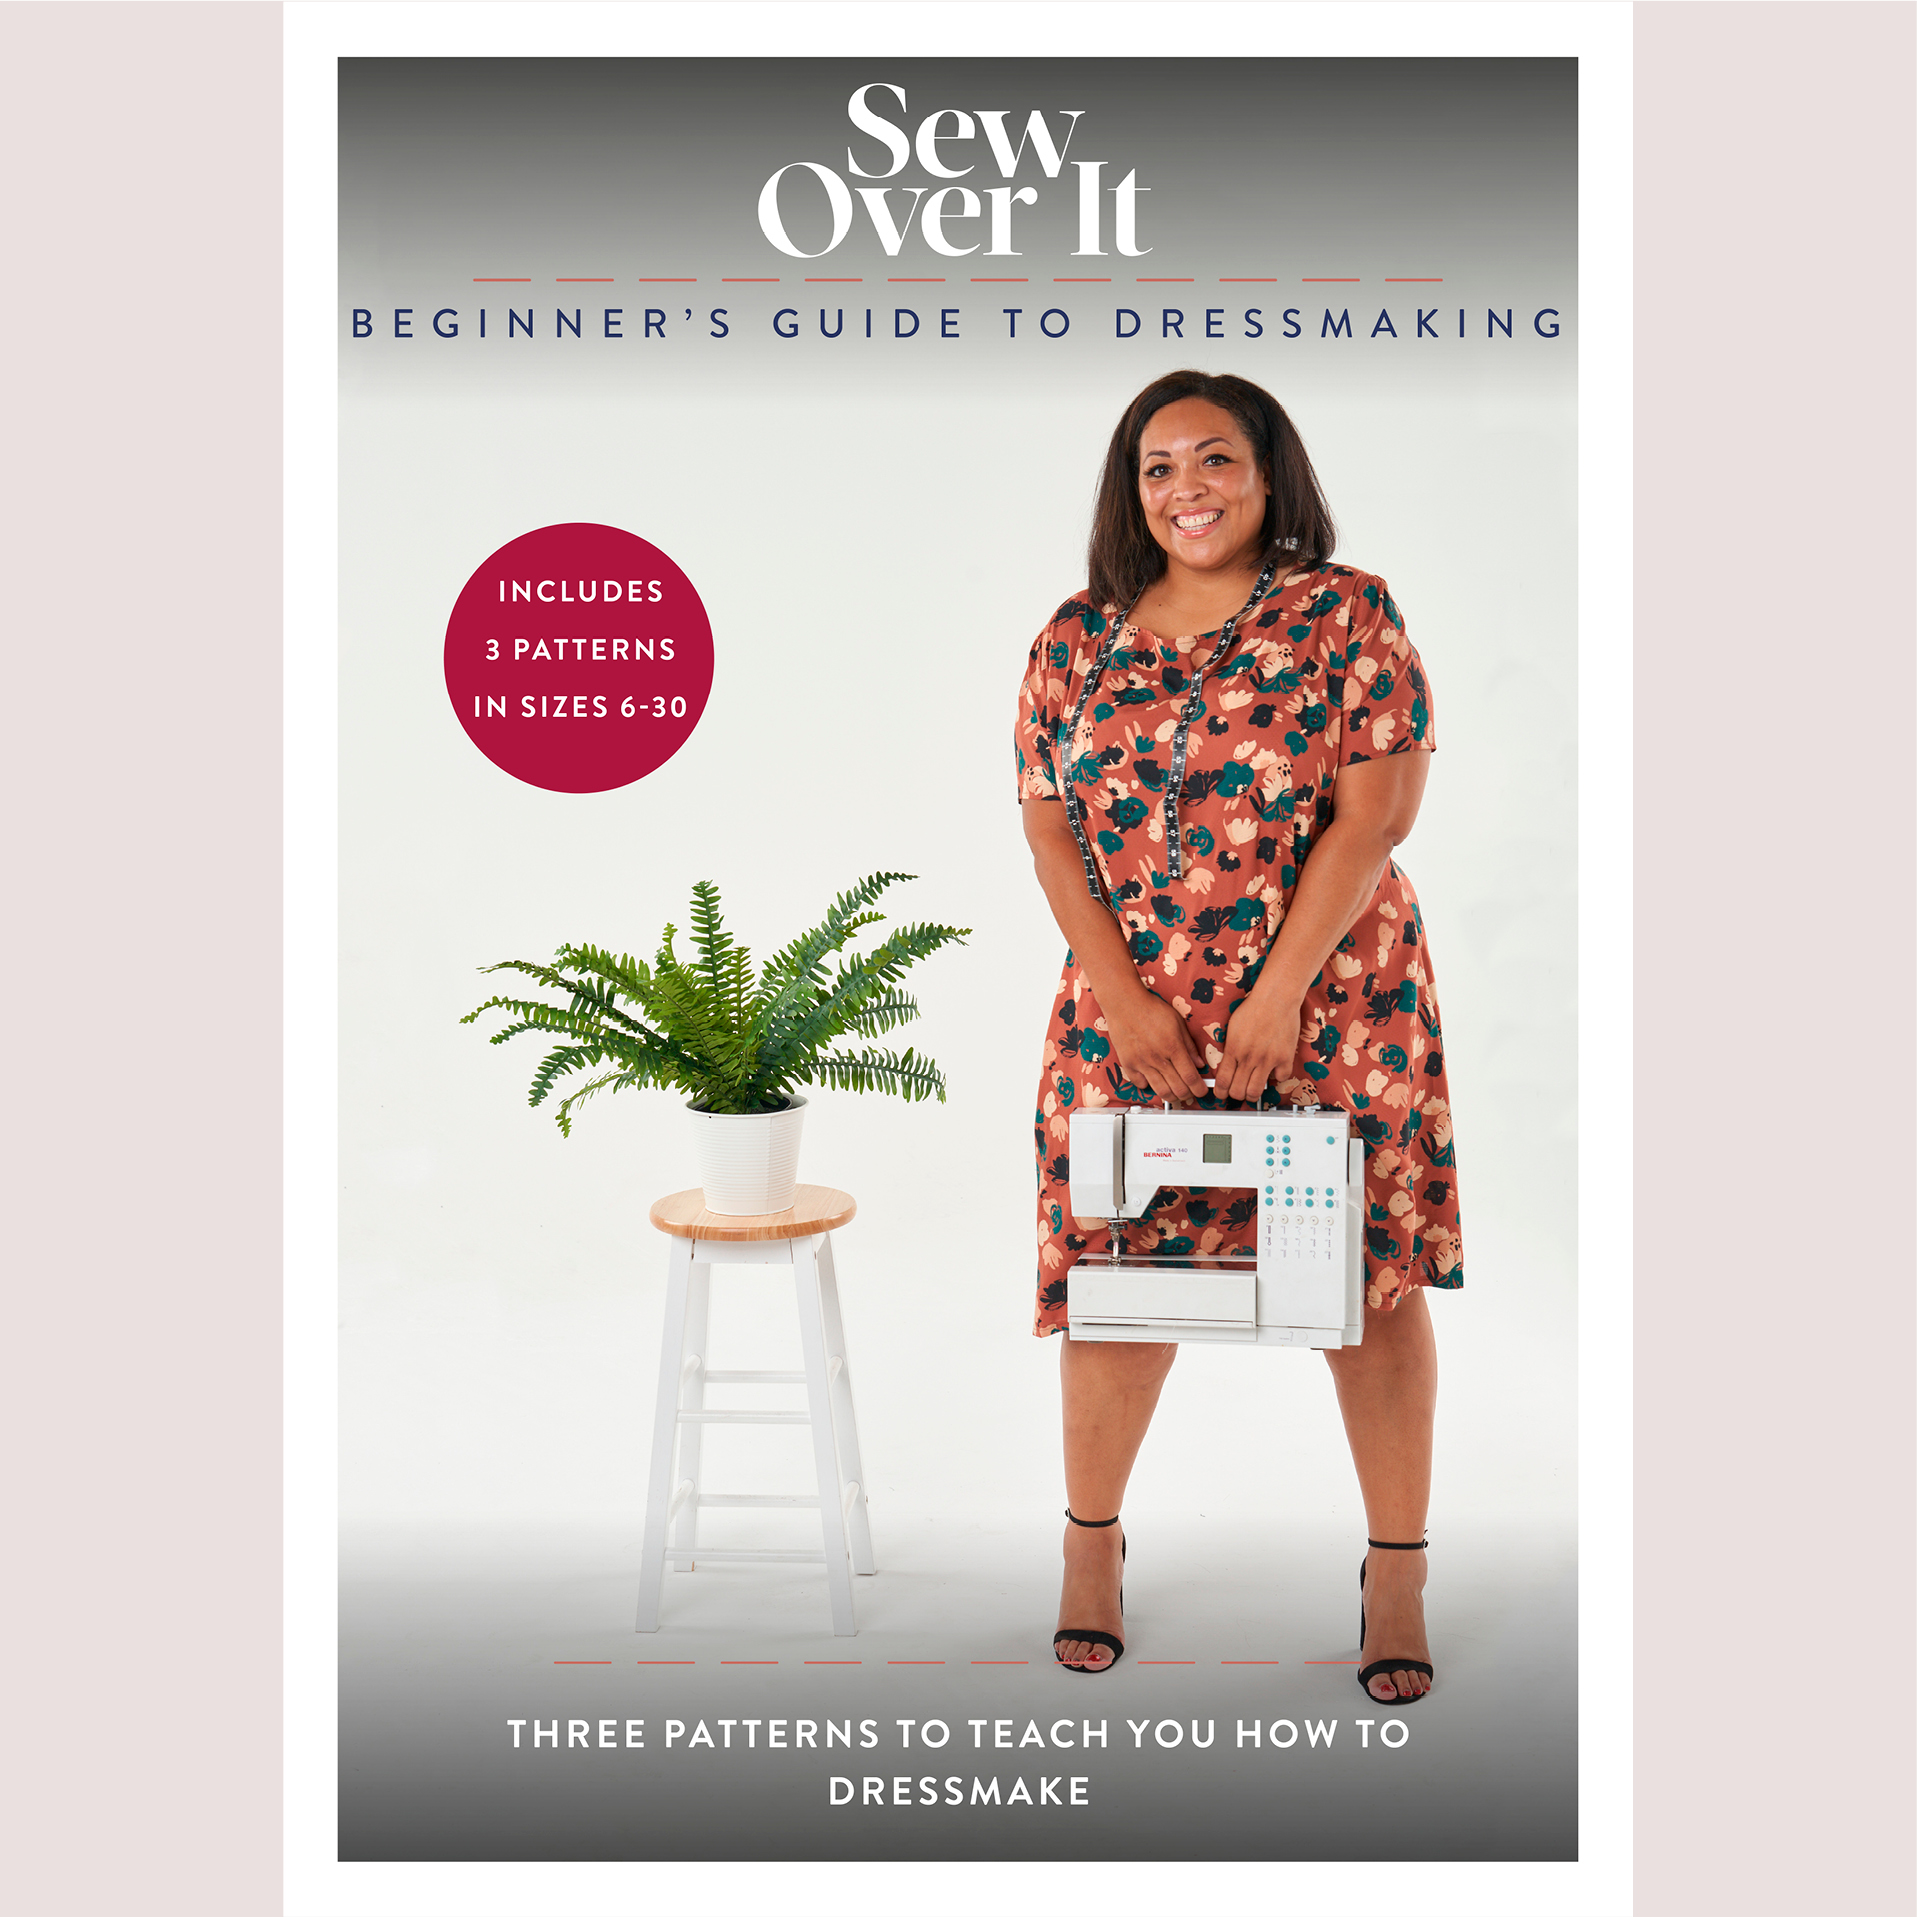 Sew Over It - Beginner's Guide to Dressmaking